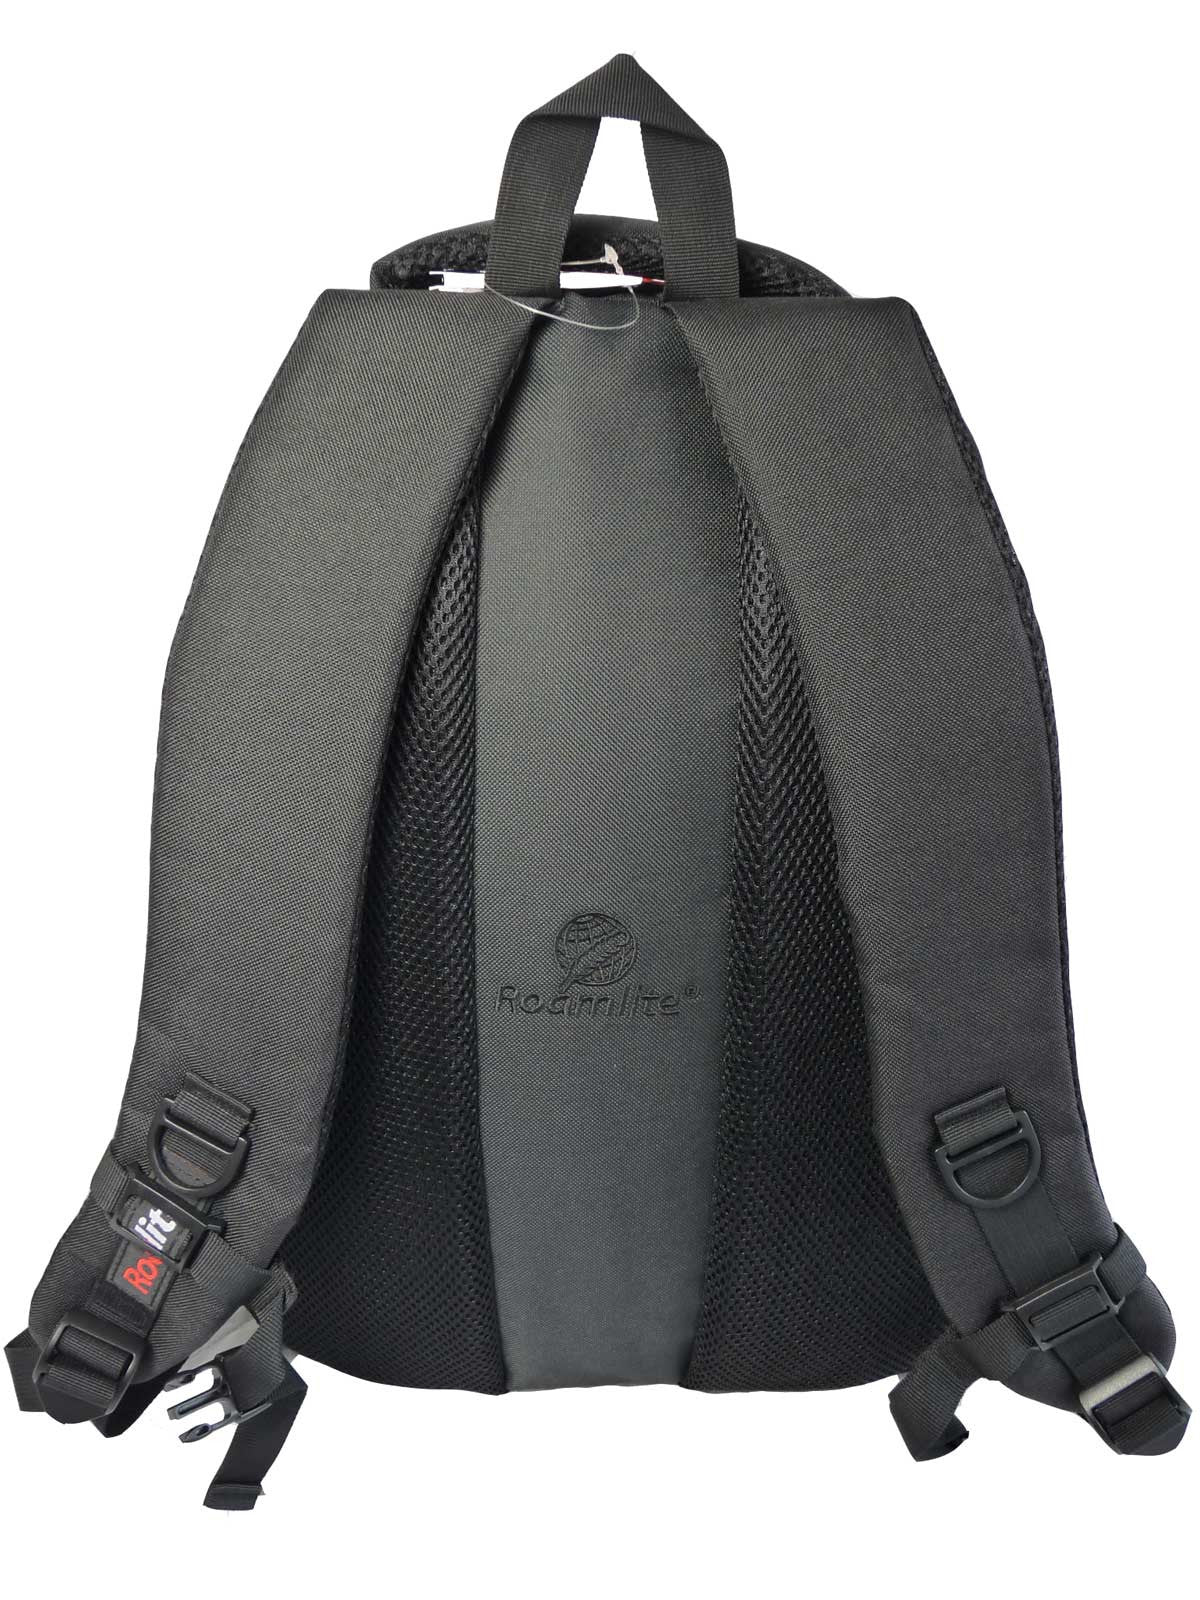 Laptop Macbook Backpack Rucksack Bag RL43 Back B View